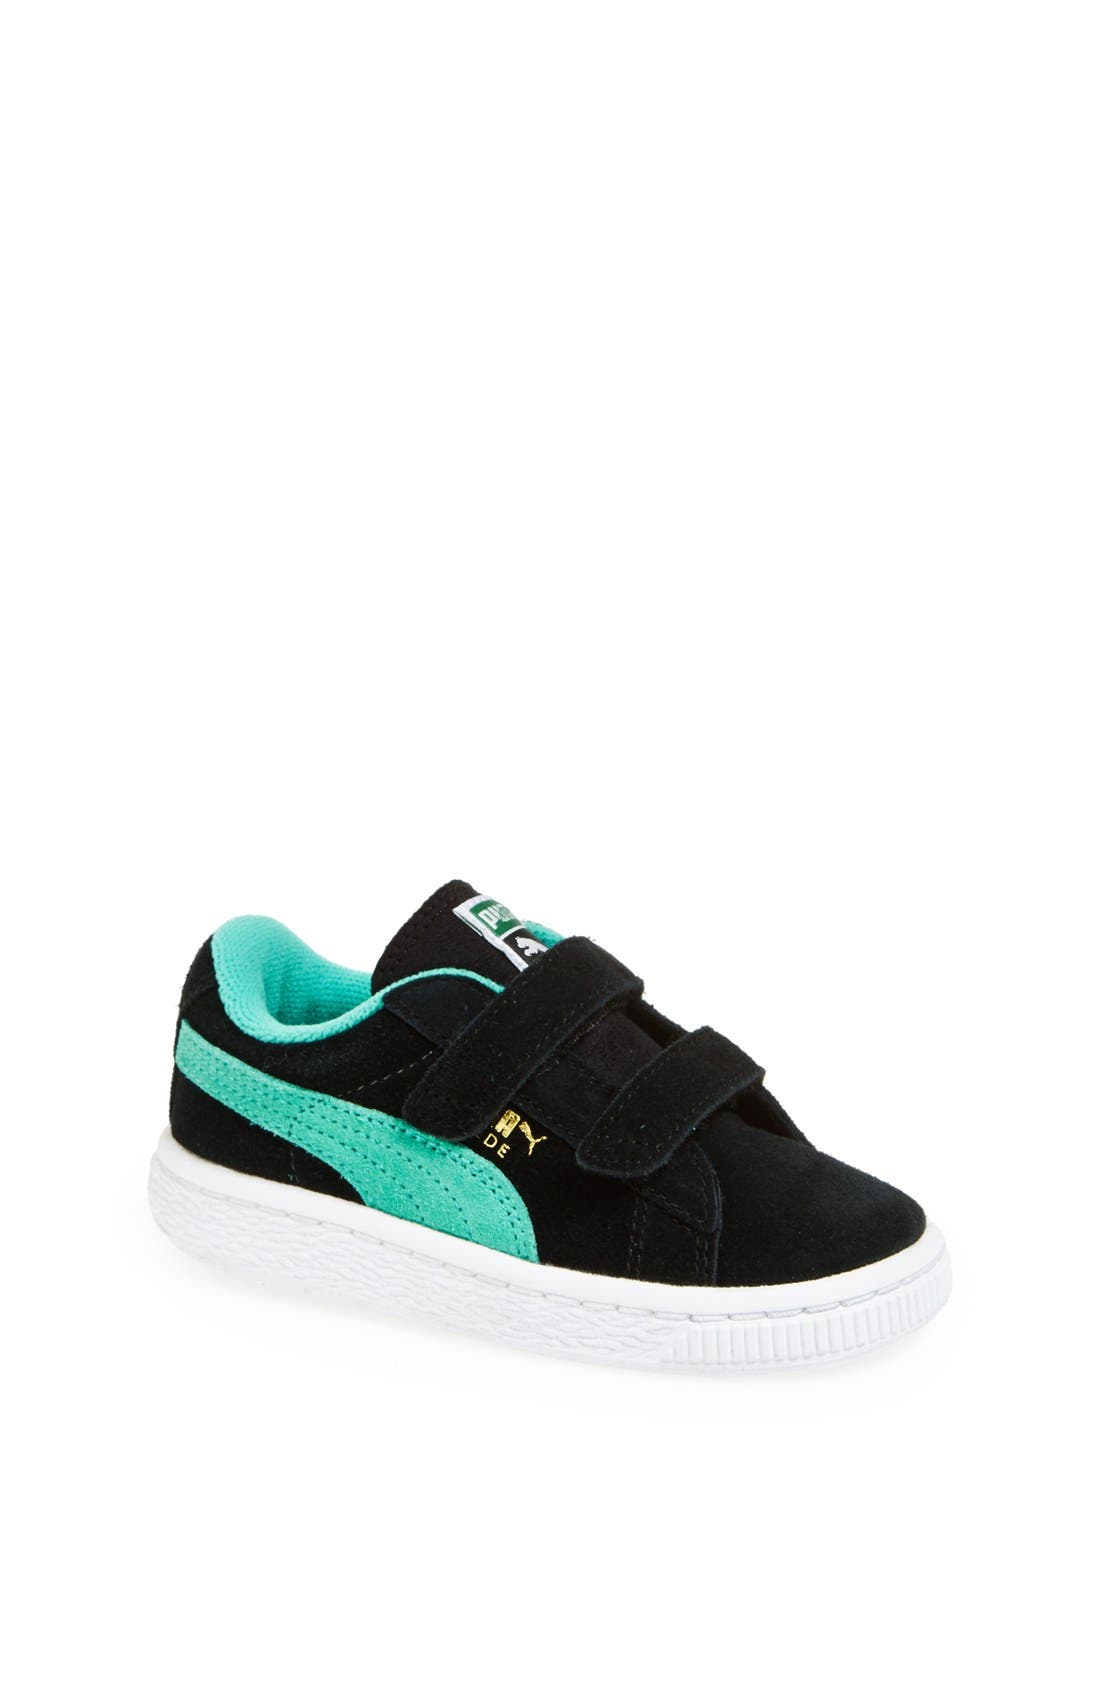 Main Image - PUMA Suede Sneaker (Baby, Walker, Toddler & Little Kid)